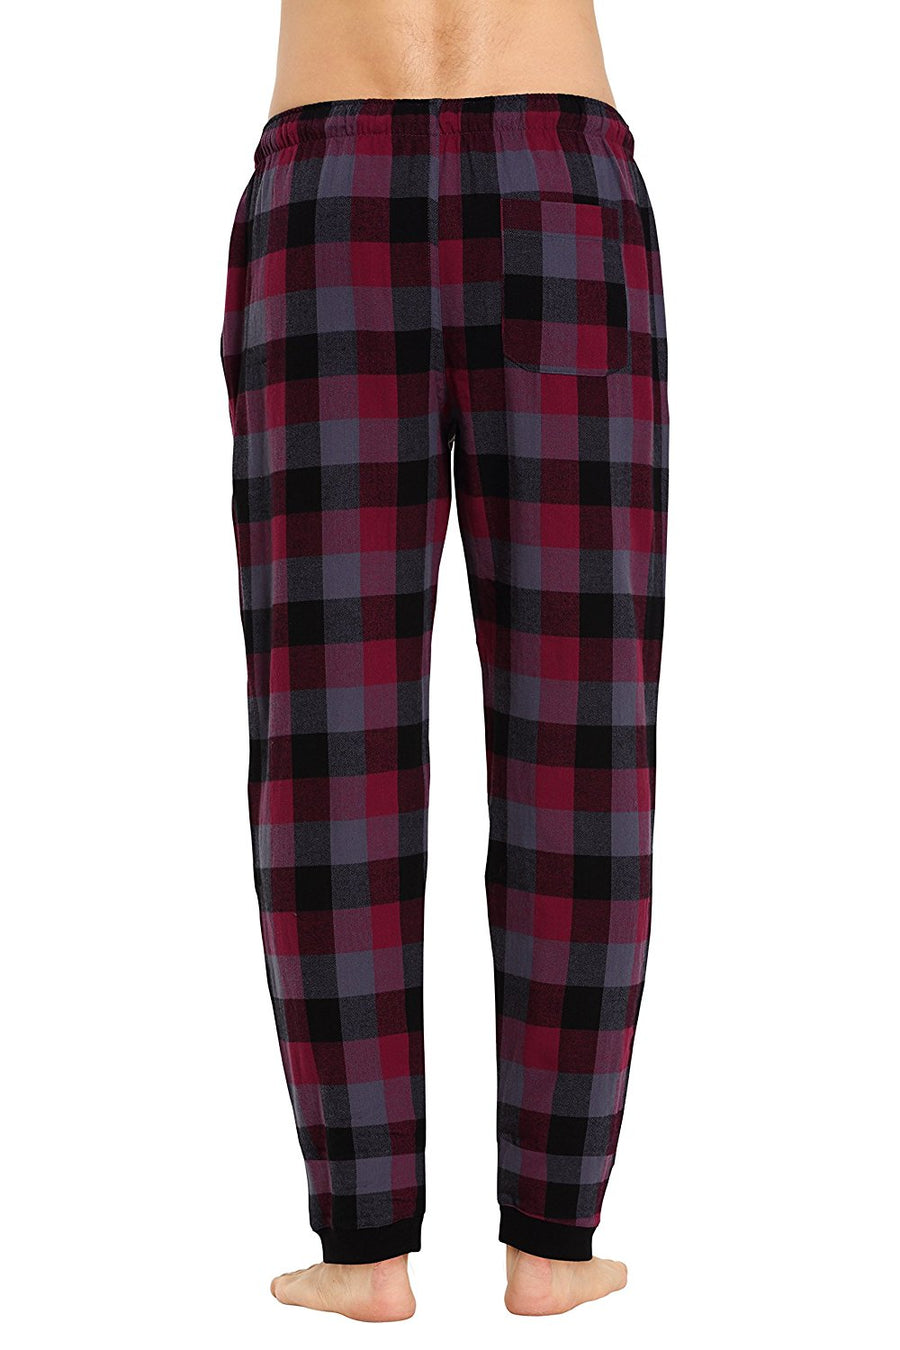 CYZ Men's 100% Cotton Flannel Jogger Pajama Lounge Pant